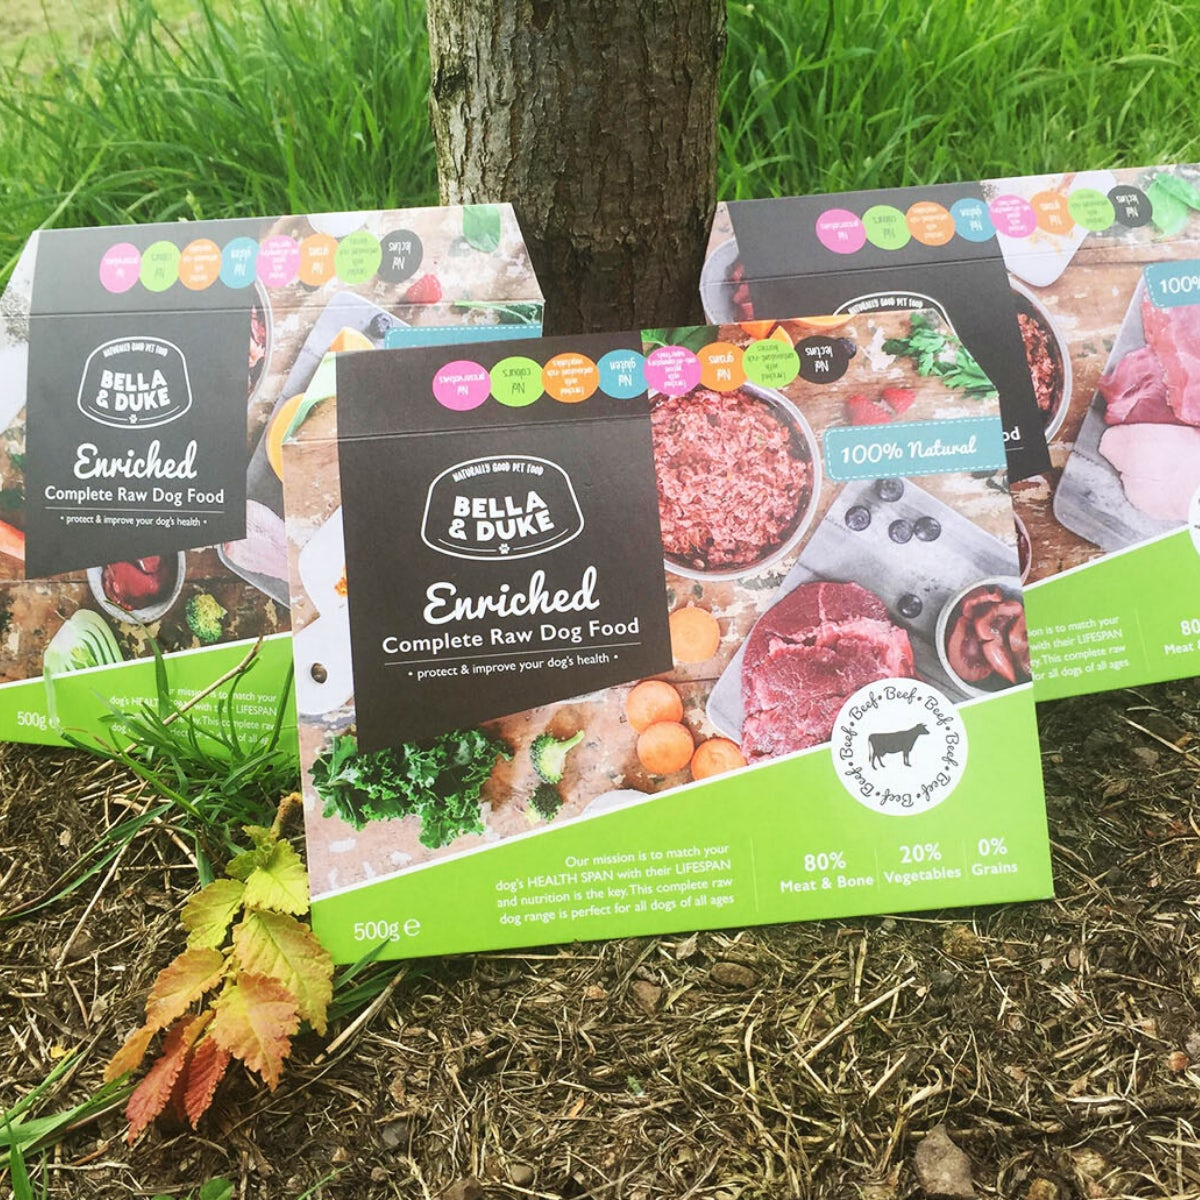 Enriched paper packaging